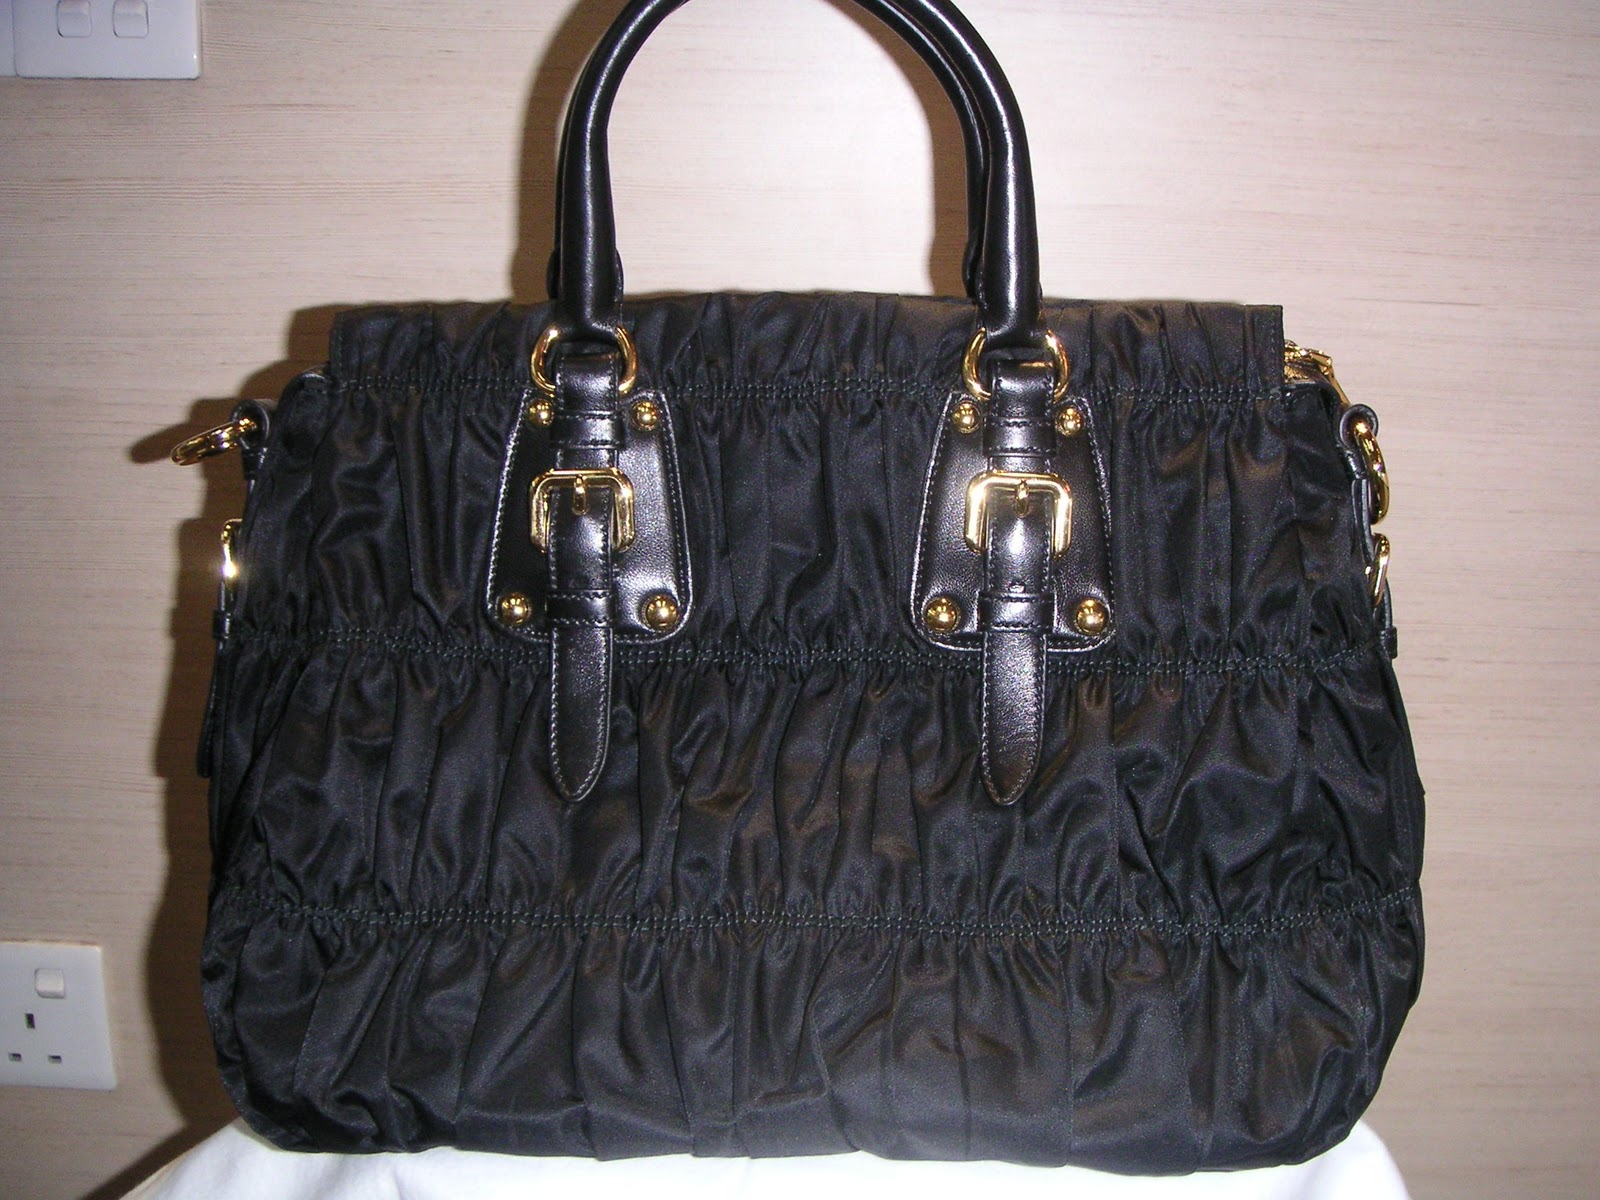 1534a104932d07 Branded Bags-Brand New & Preowned: Brand New Prada BN1336 Tessuto Gaufre